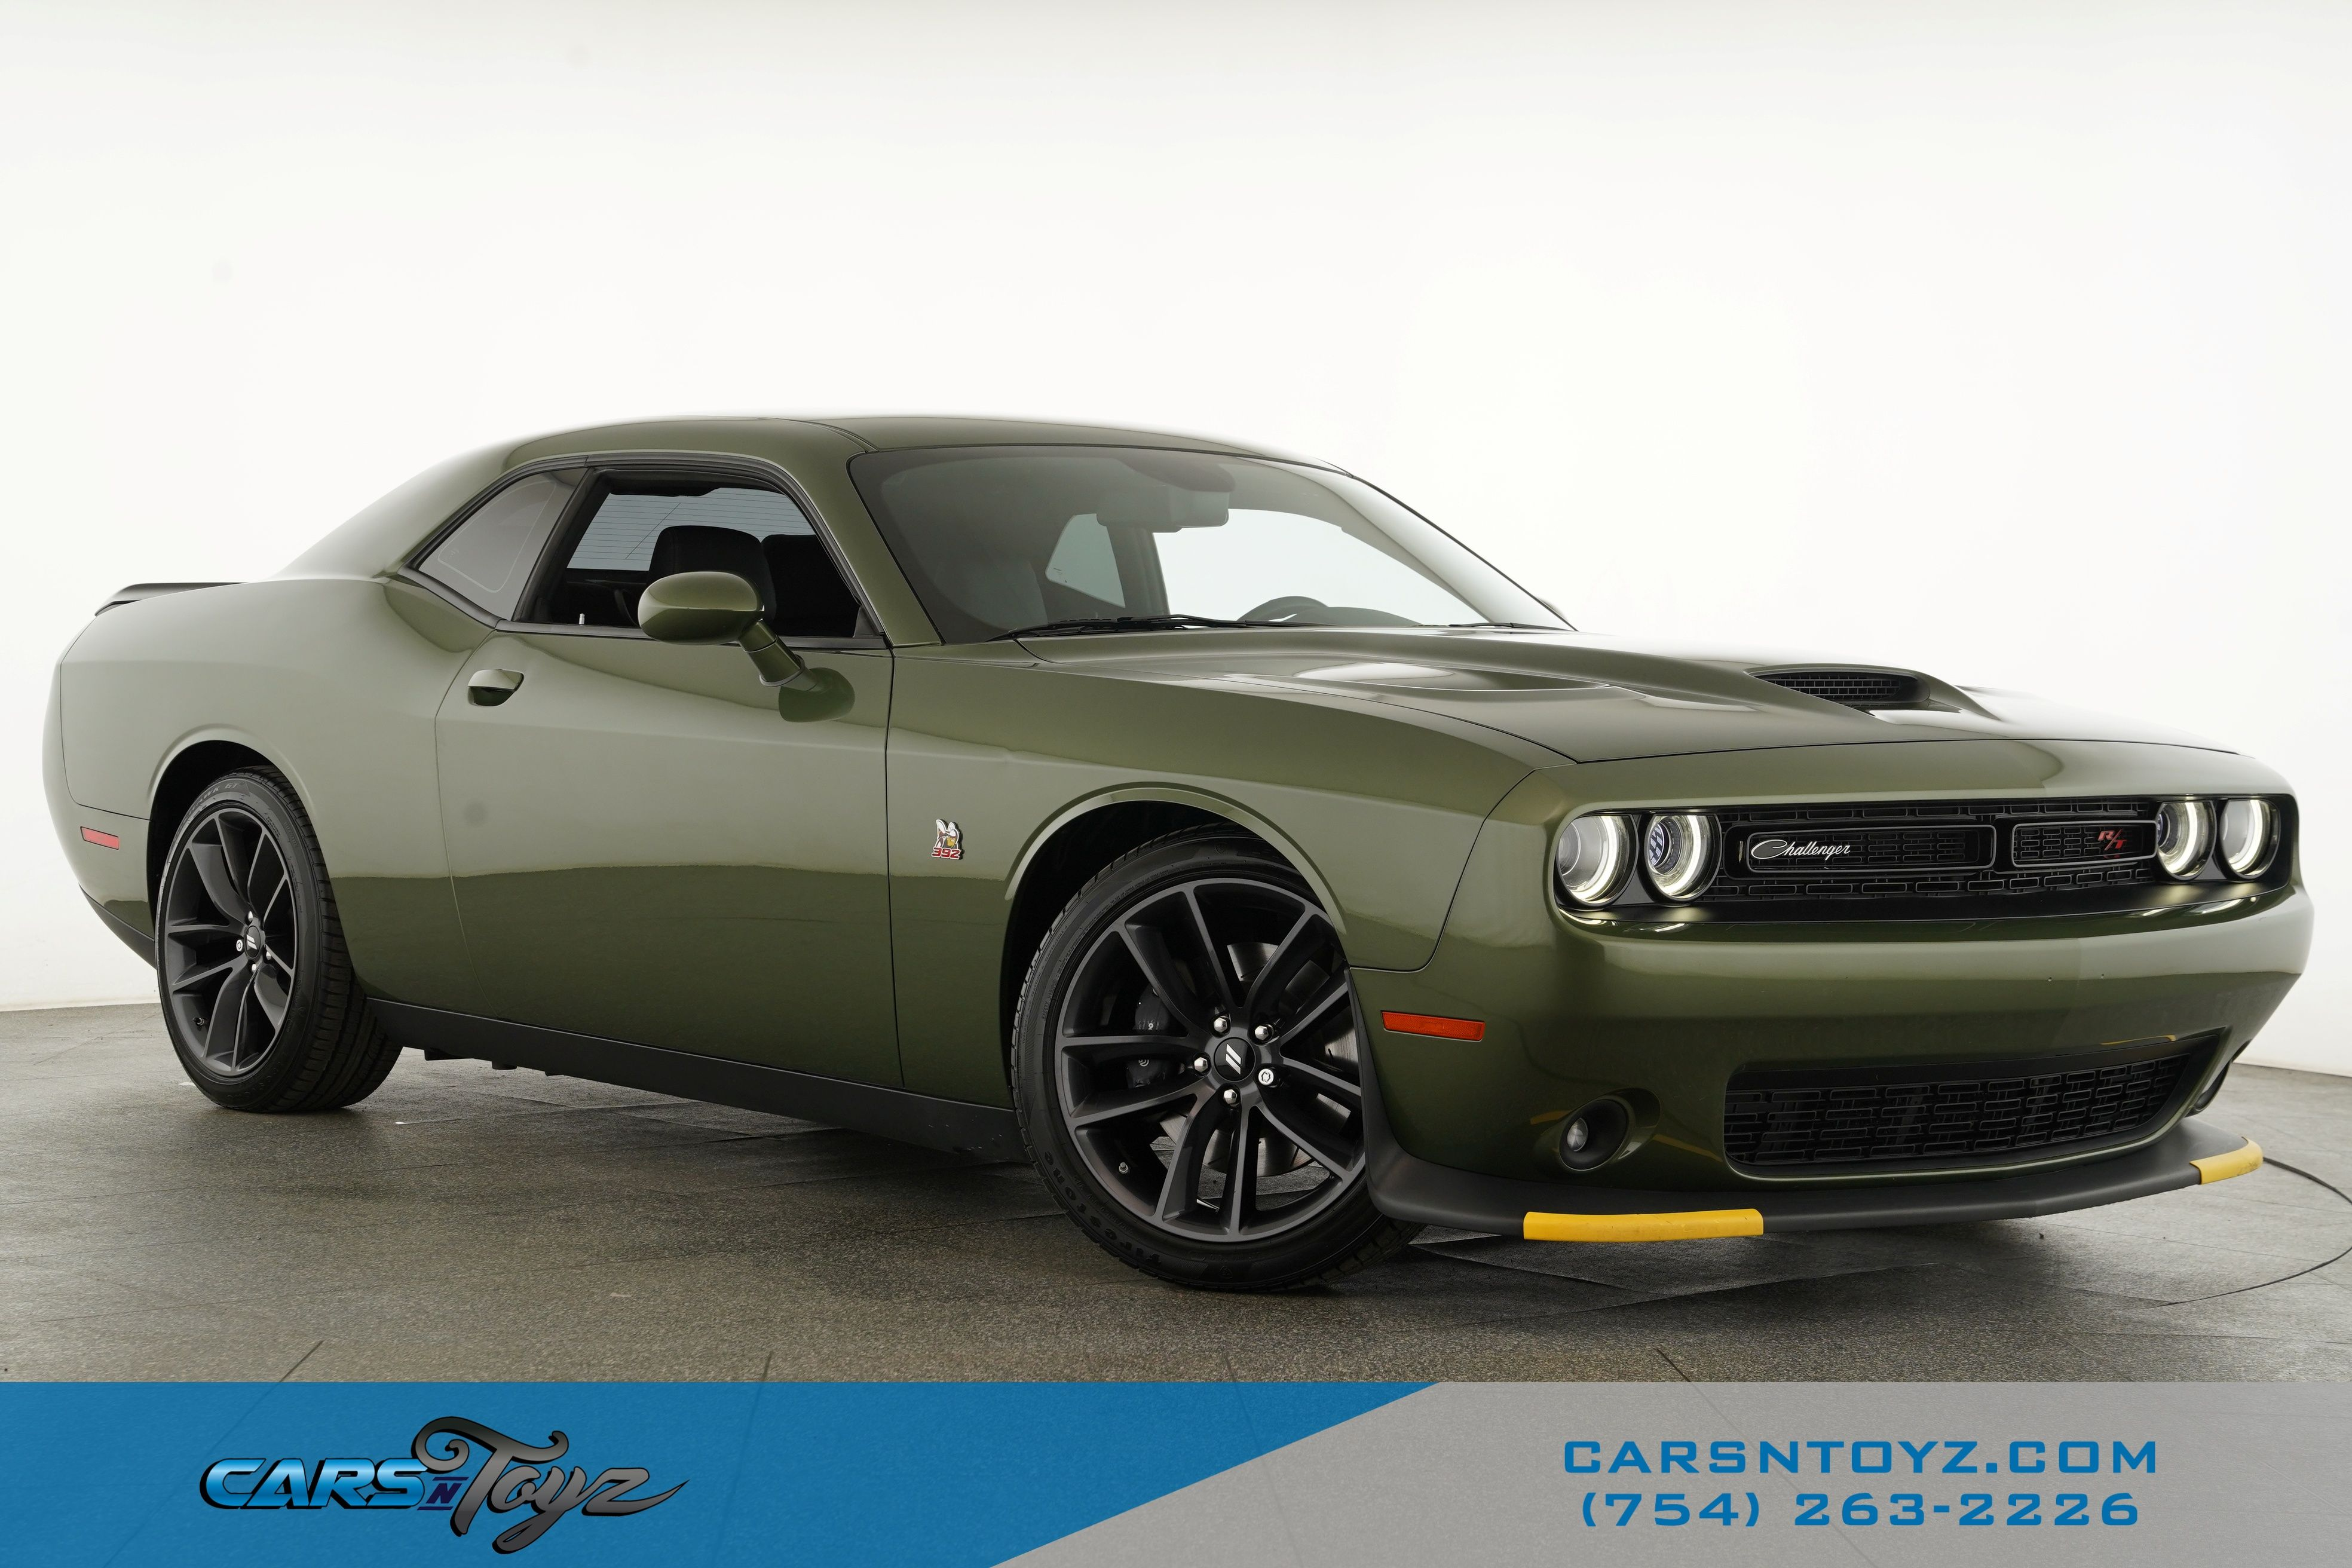 2019 DODGE Challenger R/T Scat Pack Rear Wheel Drive Coupe